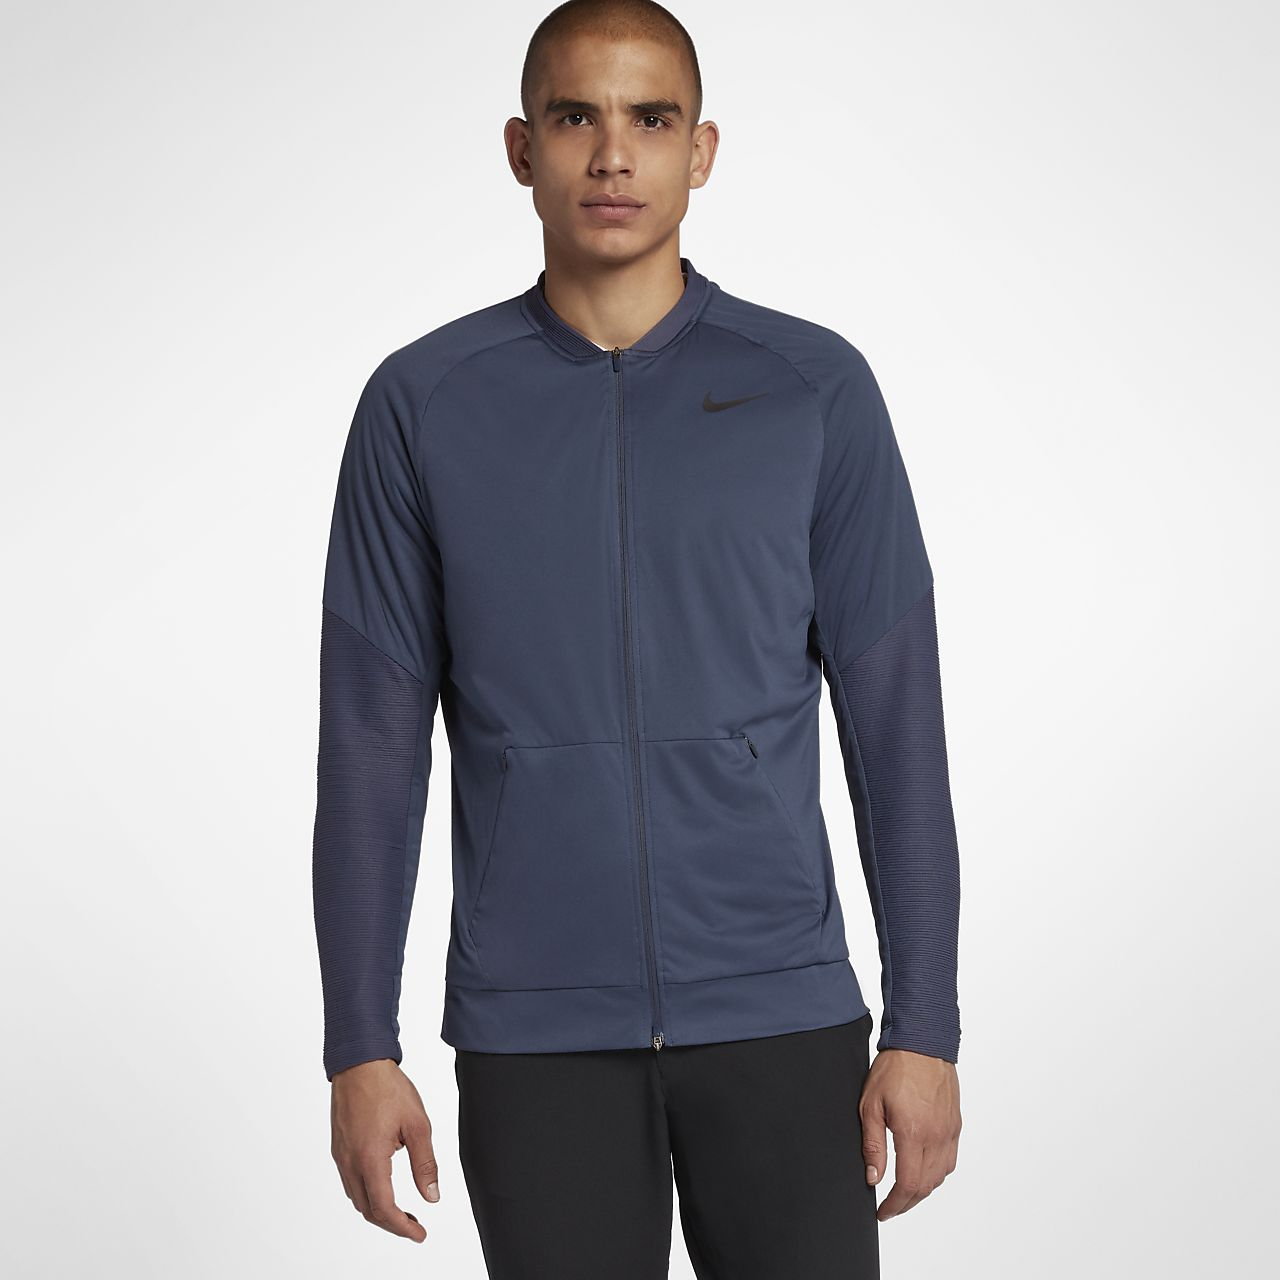 Nike AeroLayer Men's Golf Jacket